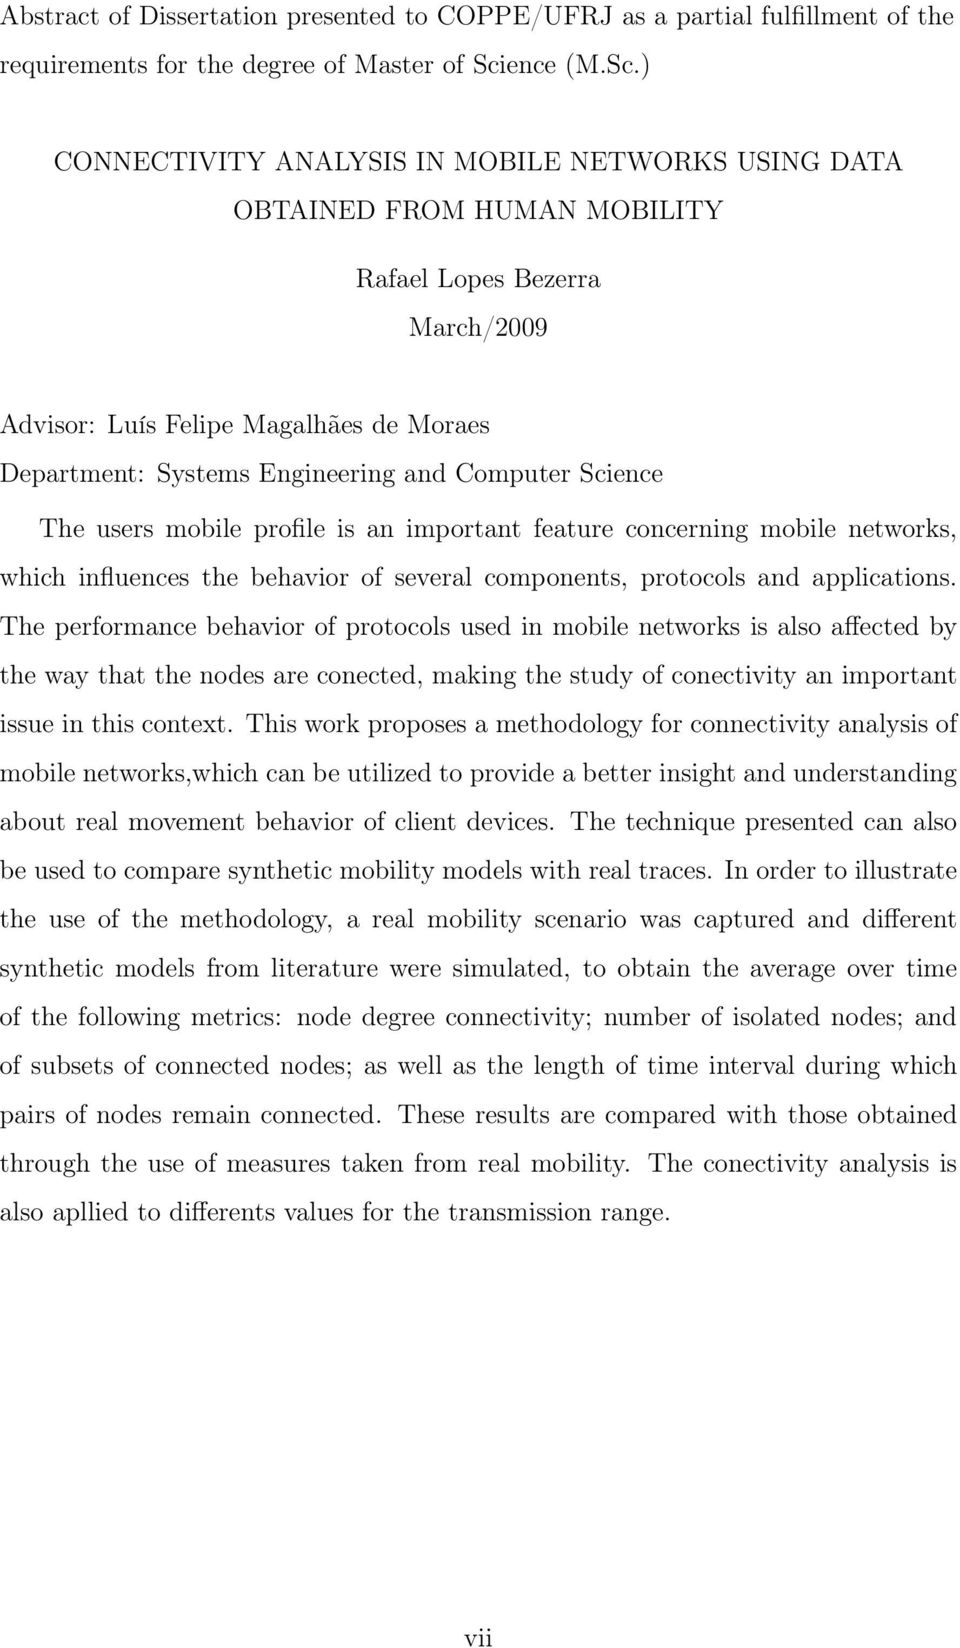 ) CONNECTIVITY ANALYSIS IN MOBILE NETWORKS USING DATA OBTAINED FROM HUMAN MOBILITY Rafael Lopes Bezerra March/2009 Advisor: Luís Felipe Magalhães de Moraes Department: Systems Engineering and